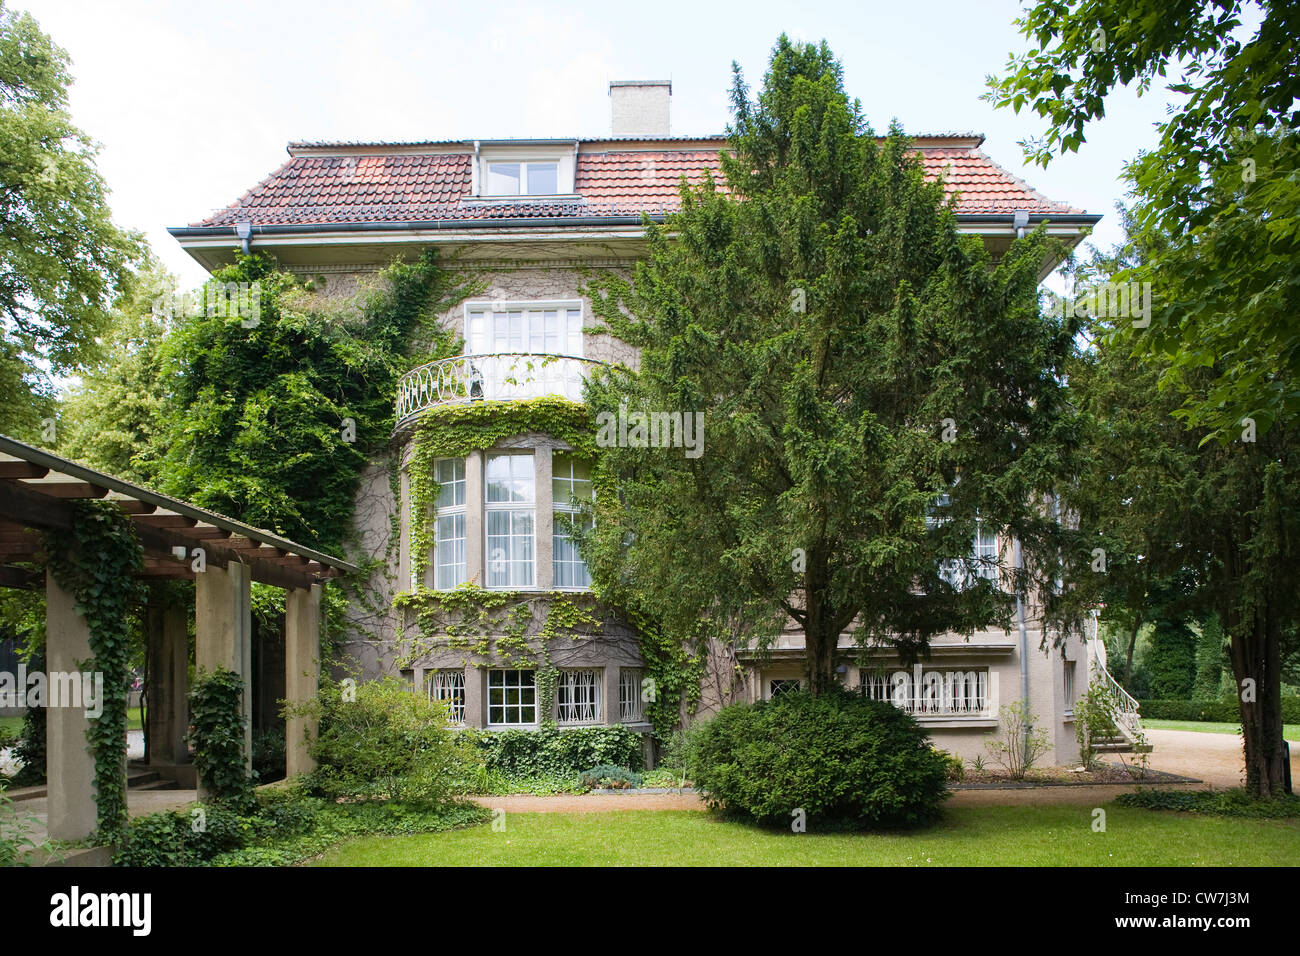 europe, germany, brandenburg, potsdam, villa where josif stalin lived in 1945 in the course of the potsdam conference - Stock Image